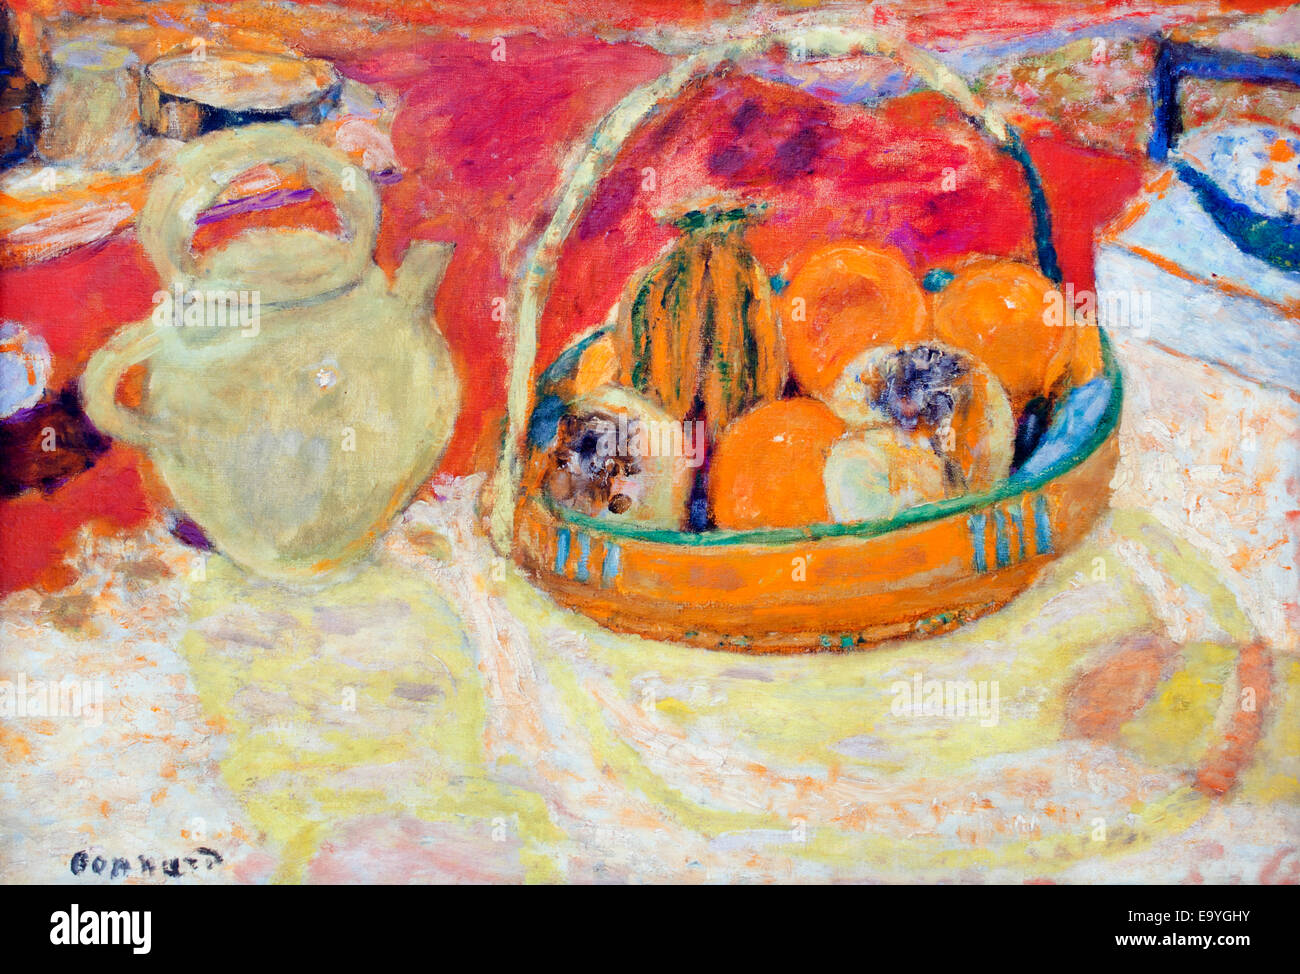 Pierre Bonnard 1867-1947 France French - Stock Image